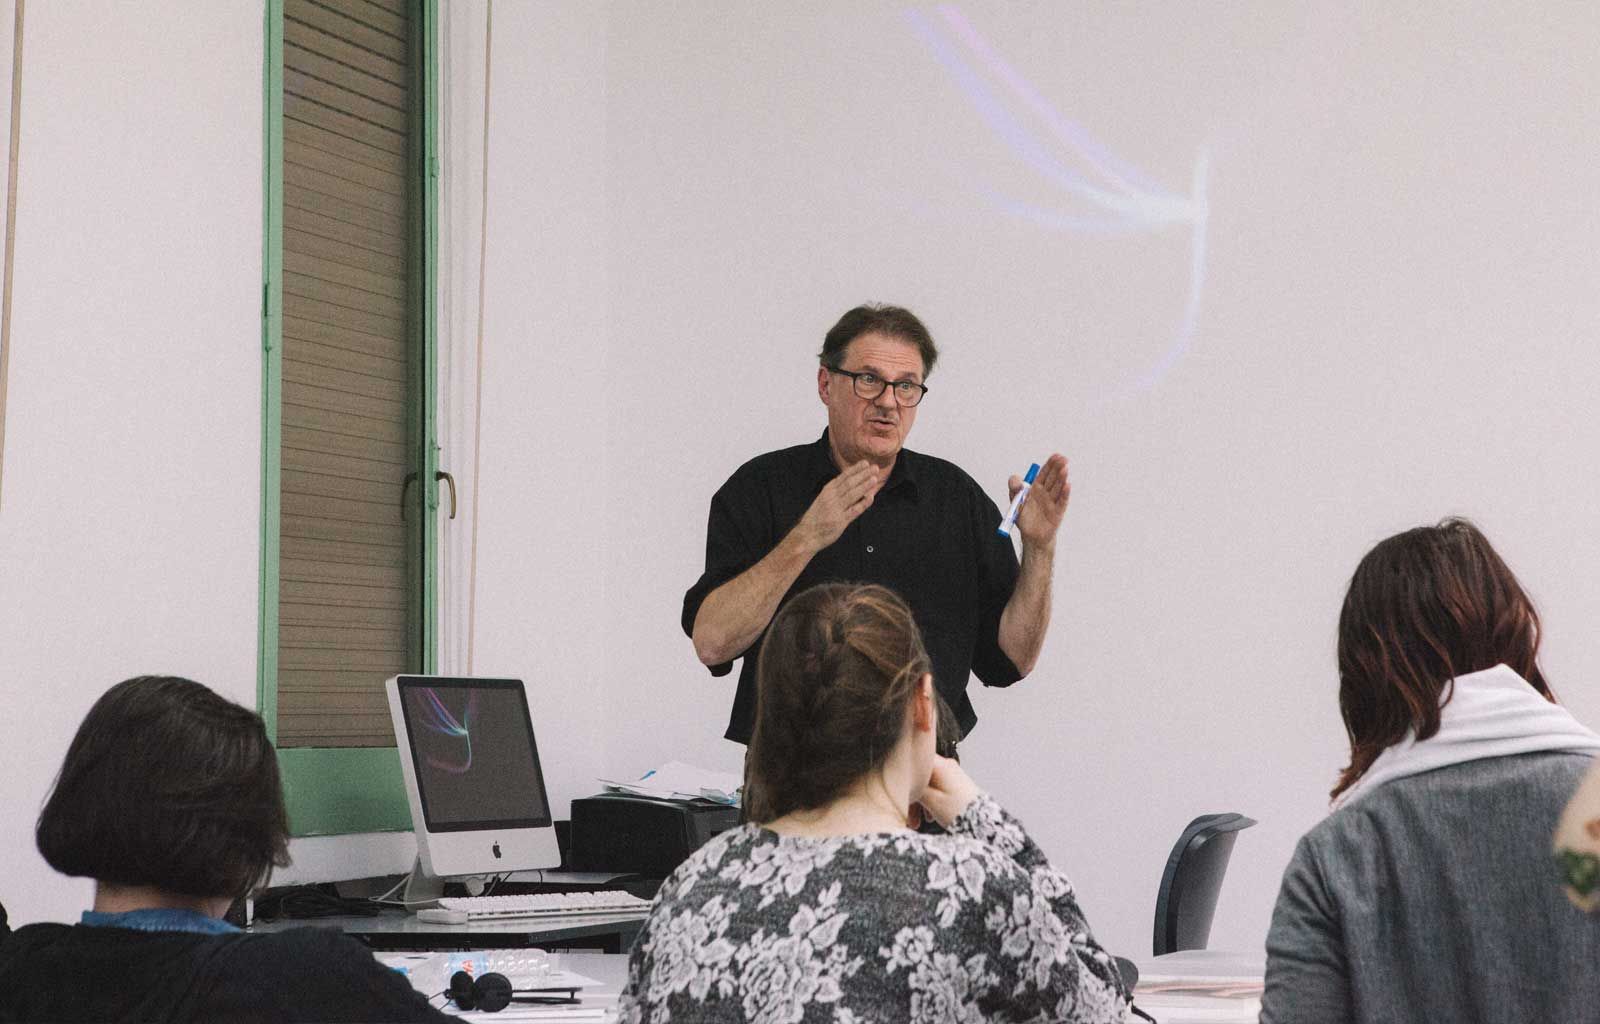 Taller con Andreas Müller-Pohle